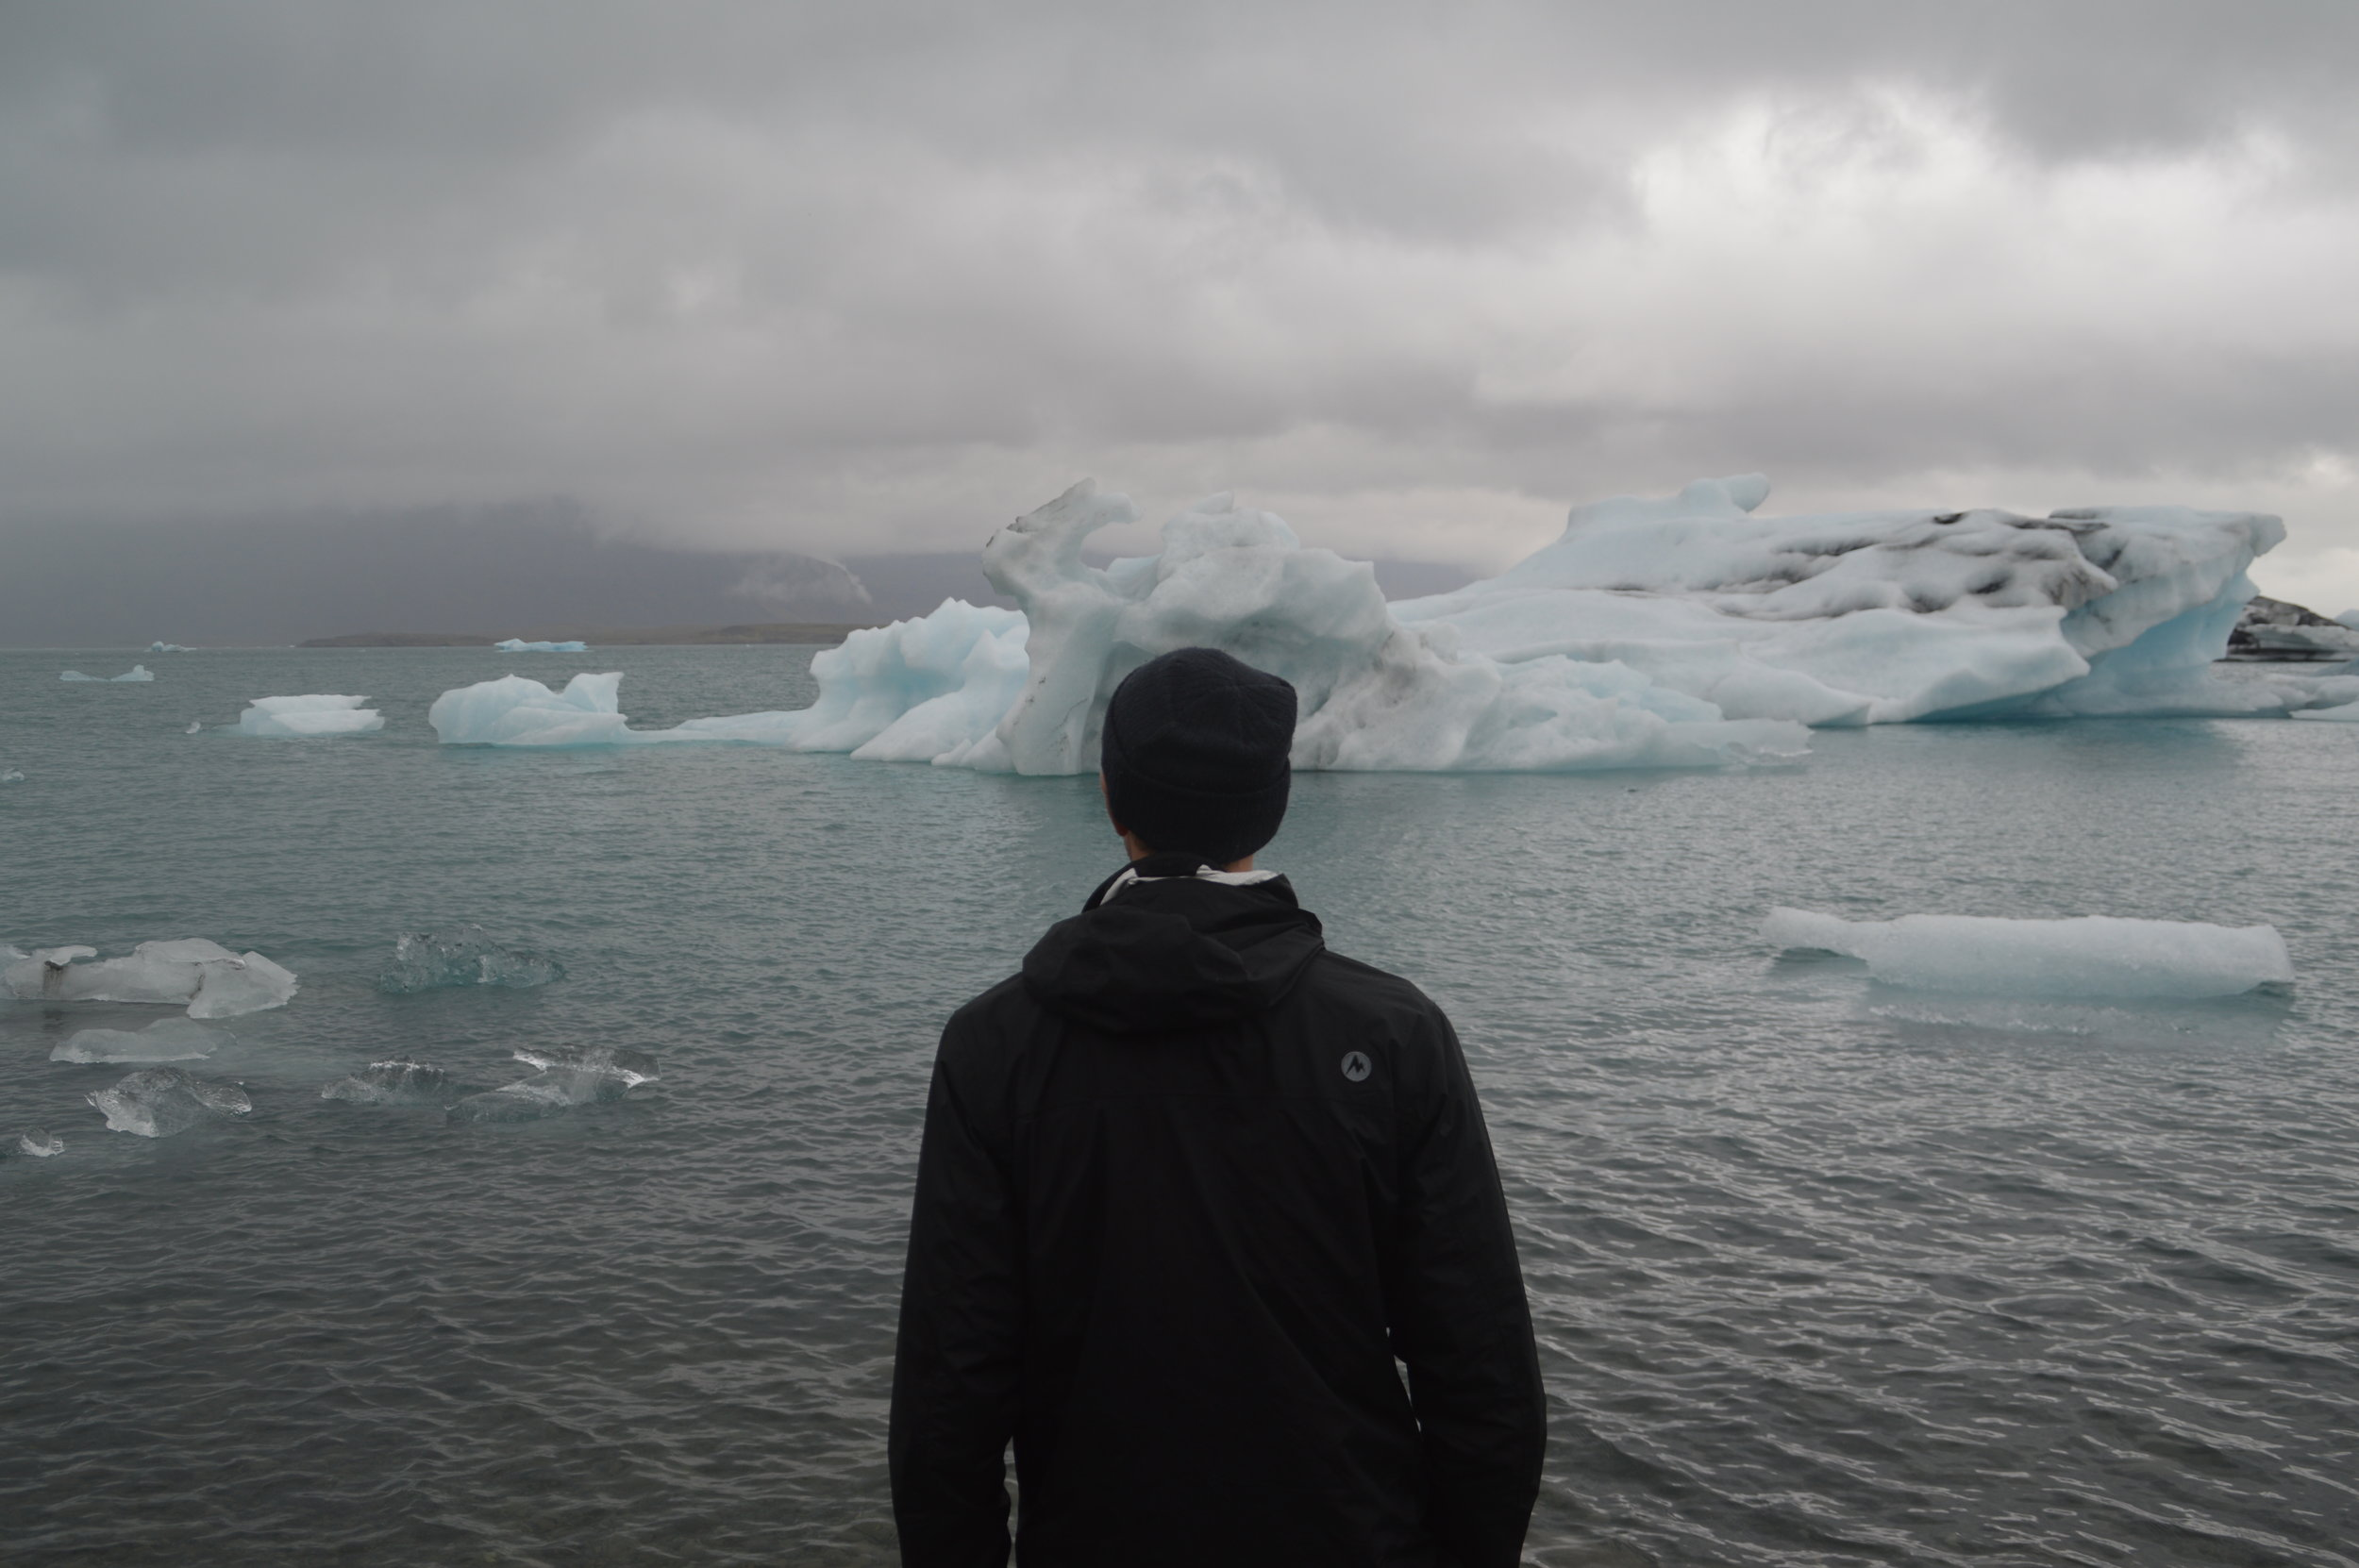 Road trip Iceland. Iceland tips. backpacking Iceland. Ring Road Iceland tips.